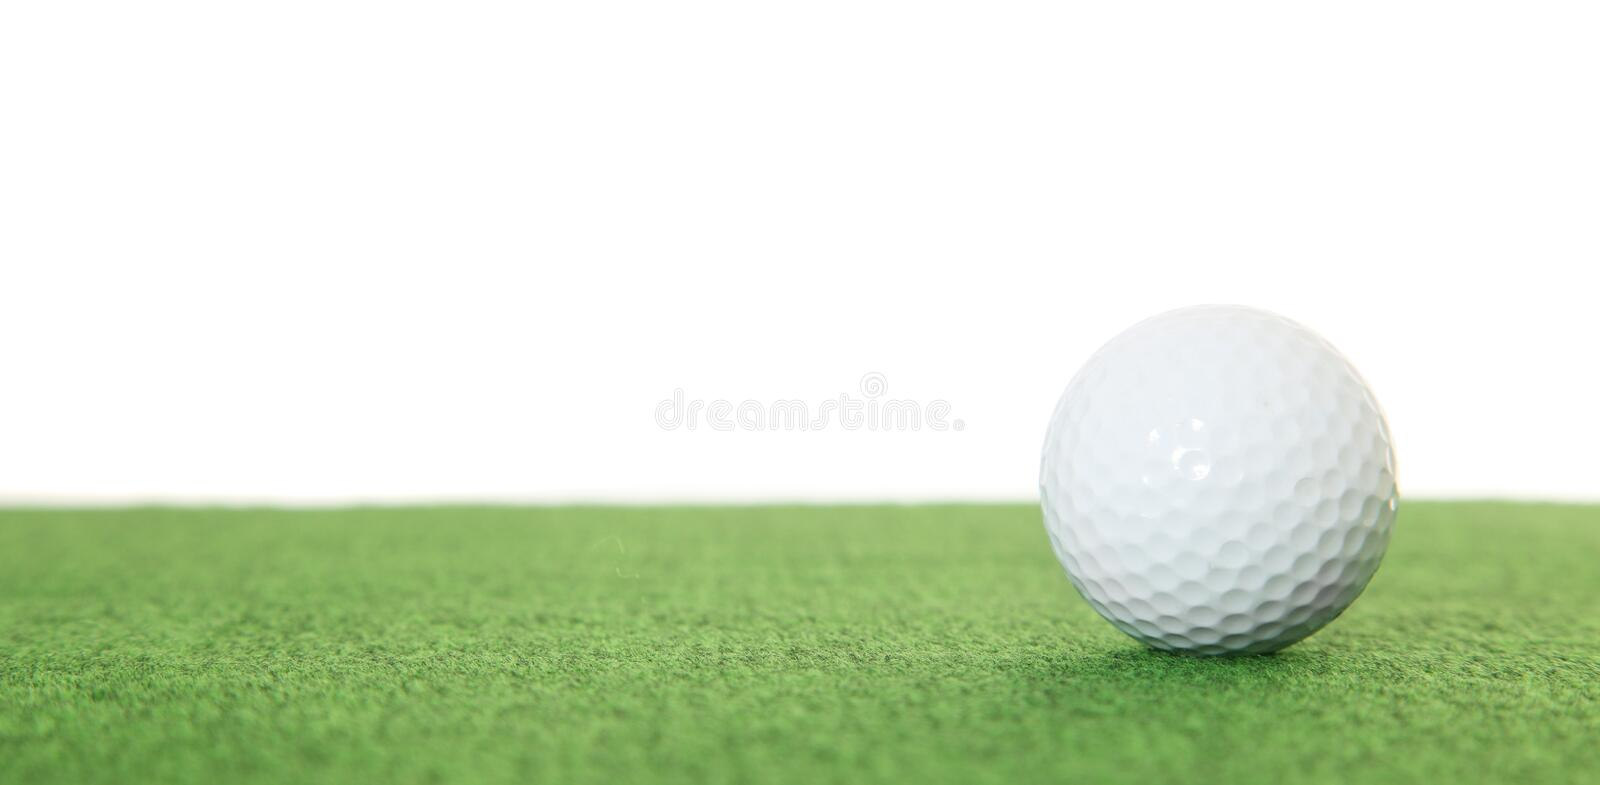 Golf ball. Single golf ball on green. All on white background stock images